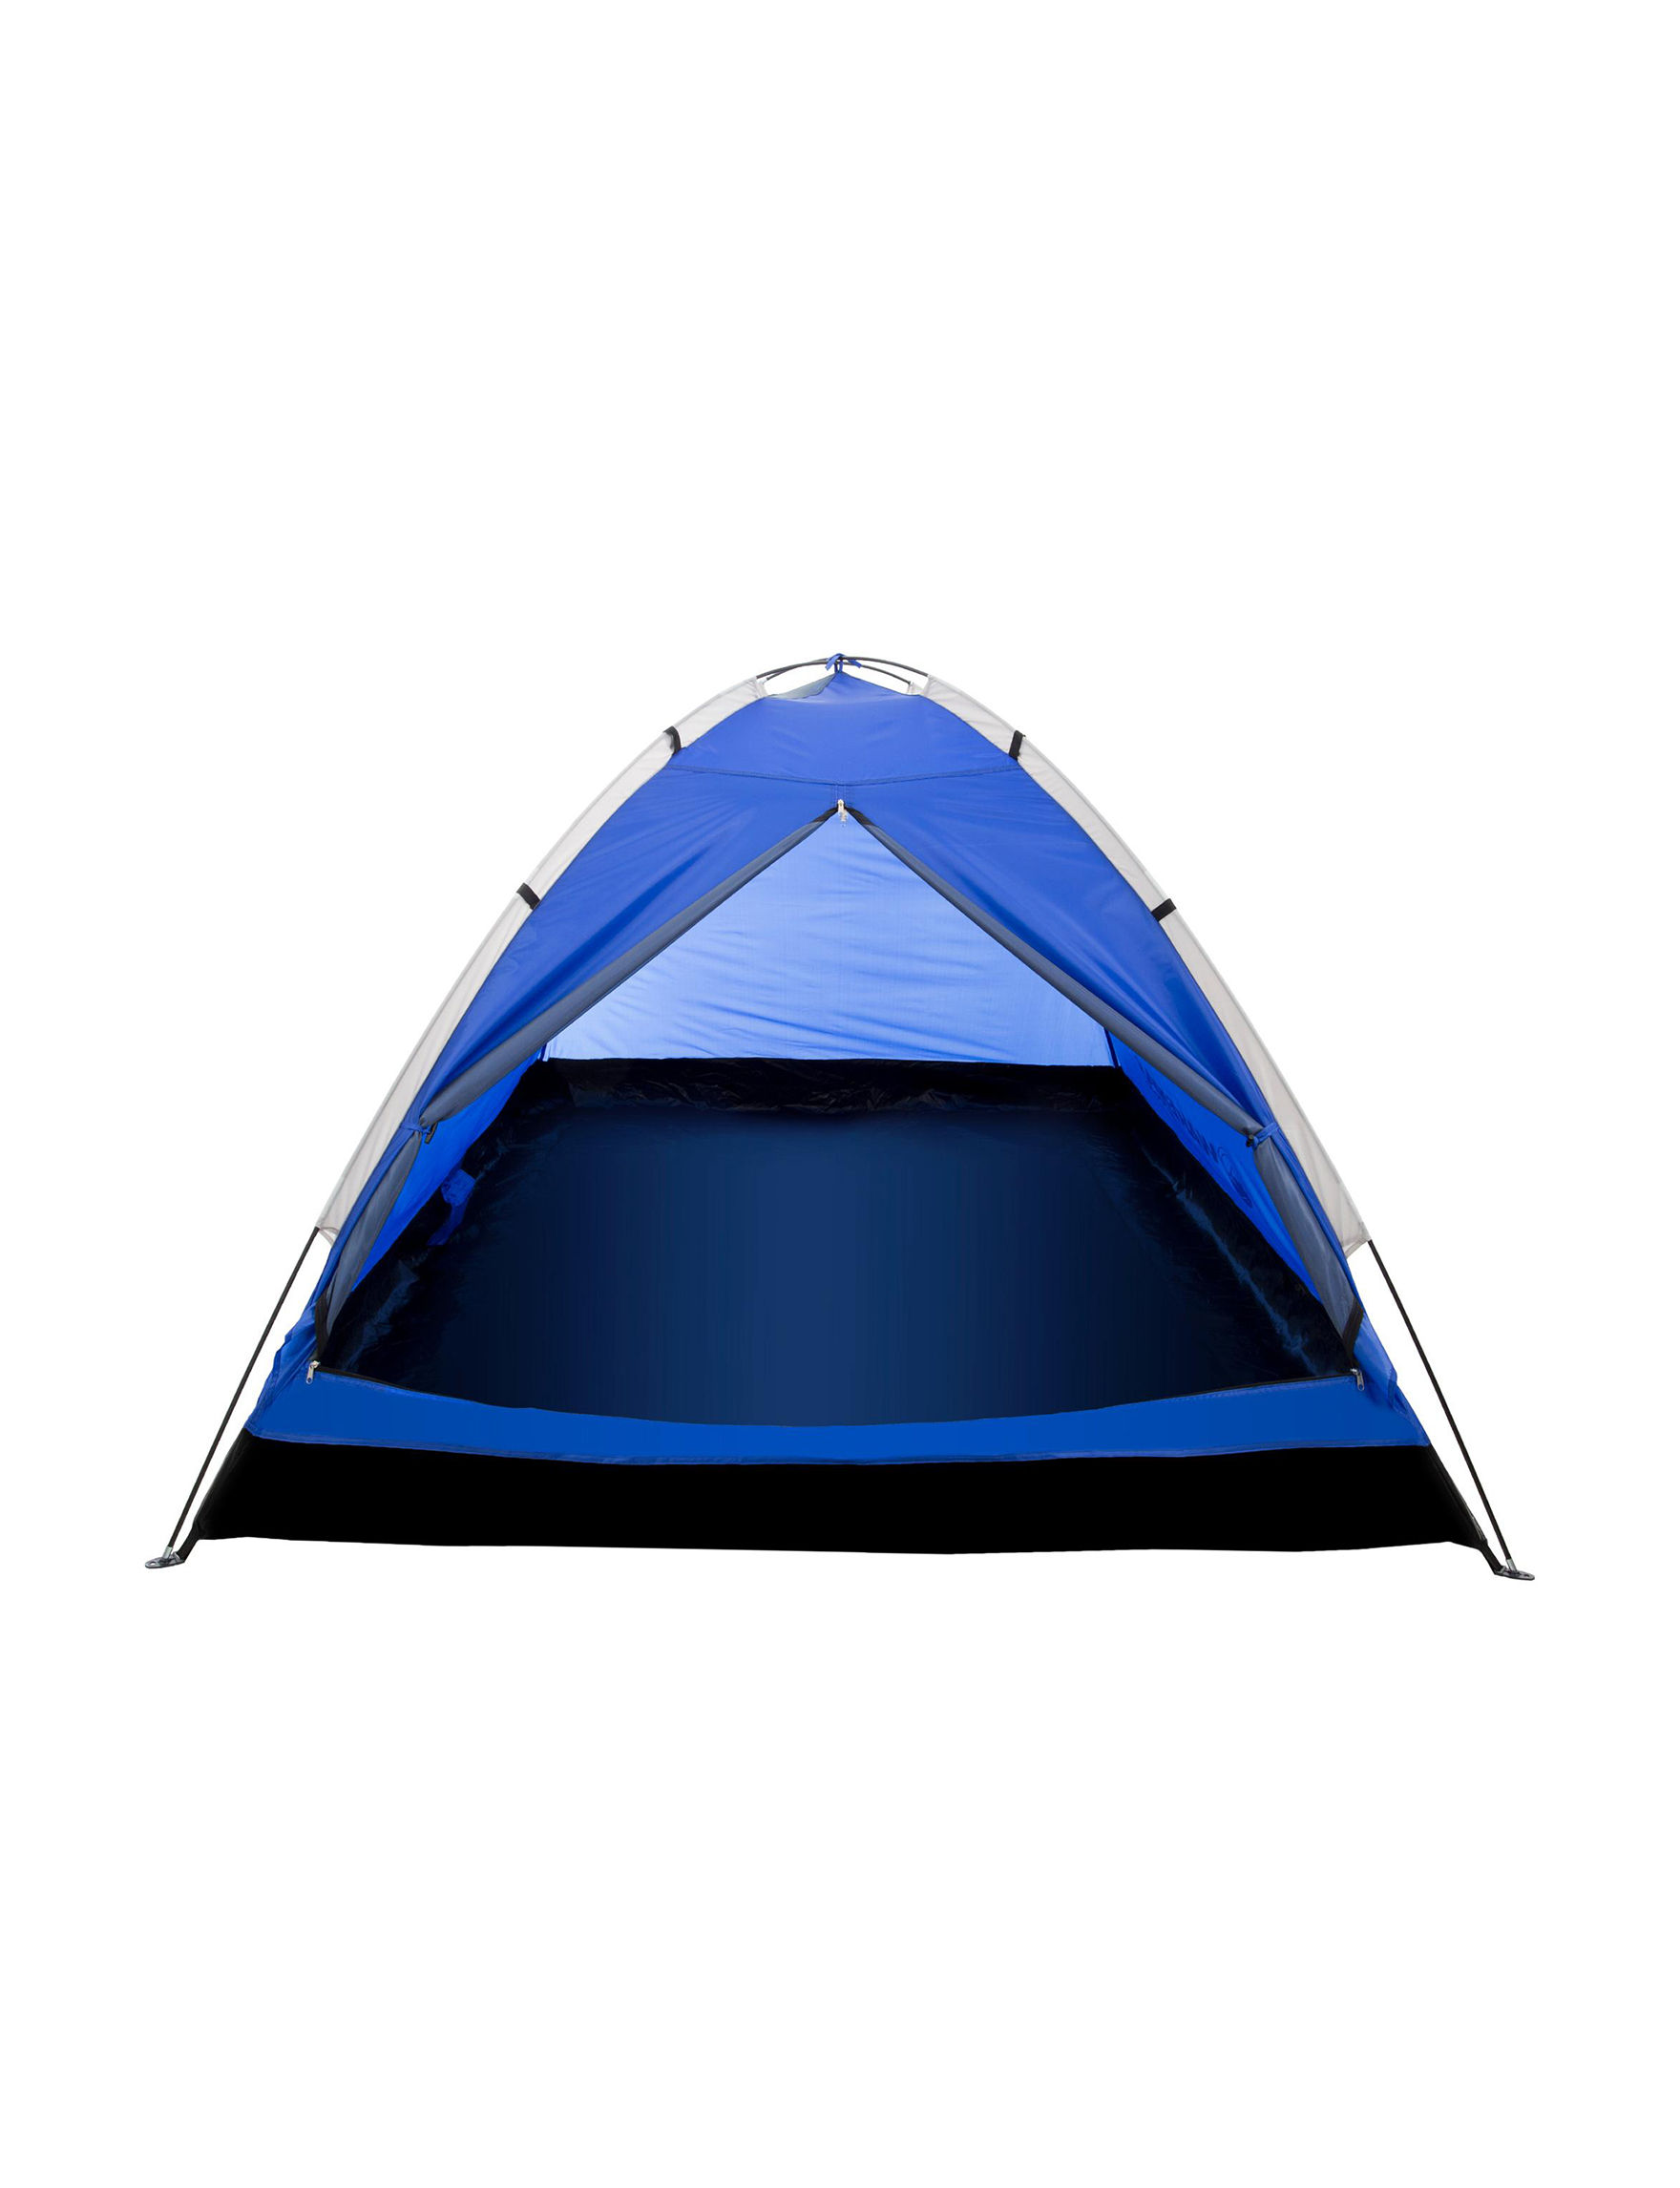 Wakeman Blue Tents & Canopies Camping & Outdoor Gear